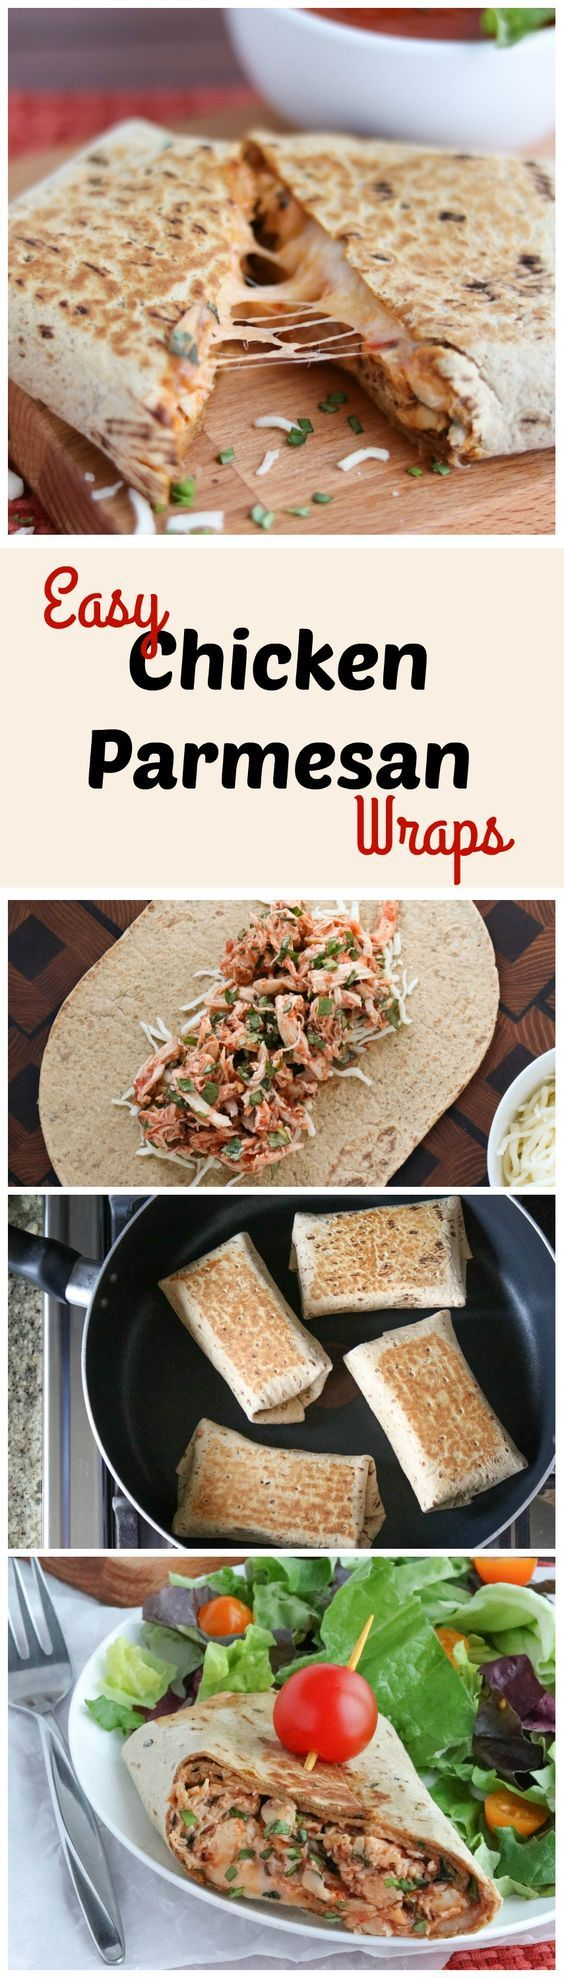 These Easy Chicken Parmesan Wraps are a fast 15-minute meal! You can even make them ahead – they're freezable, too! Cheesy, saucy and so delicious! AD | www.TwoHealthyKitchens.com: